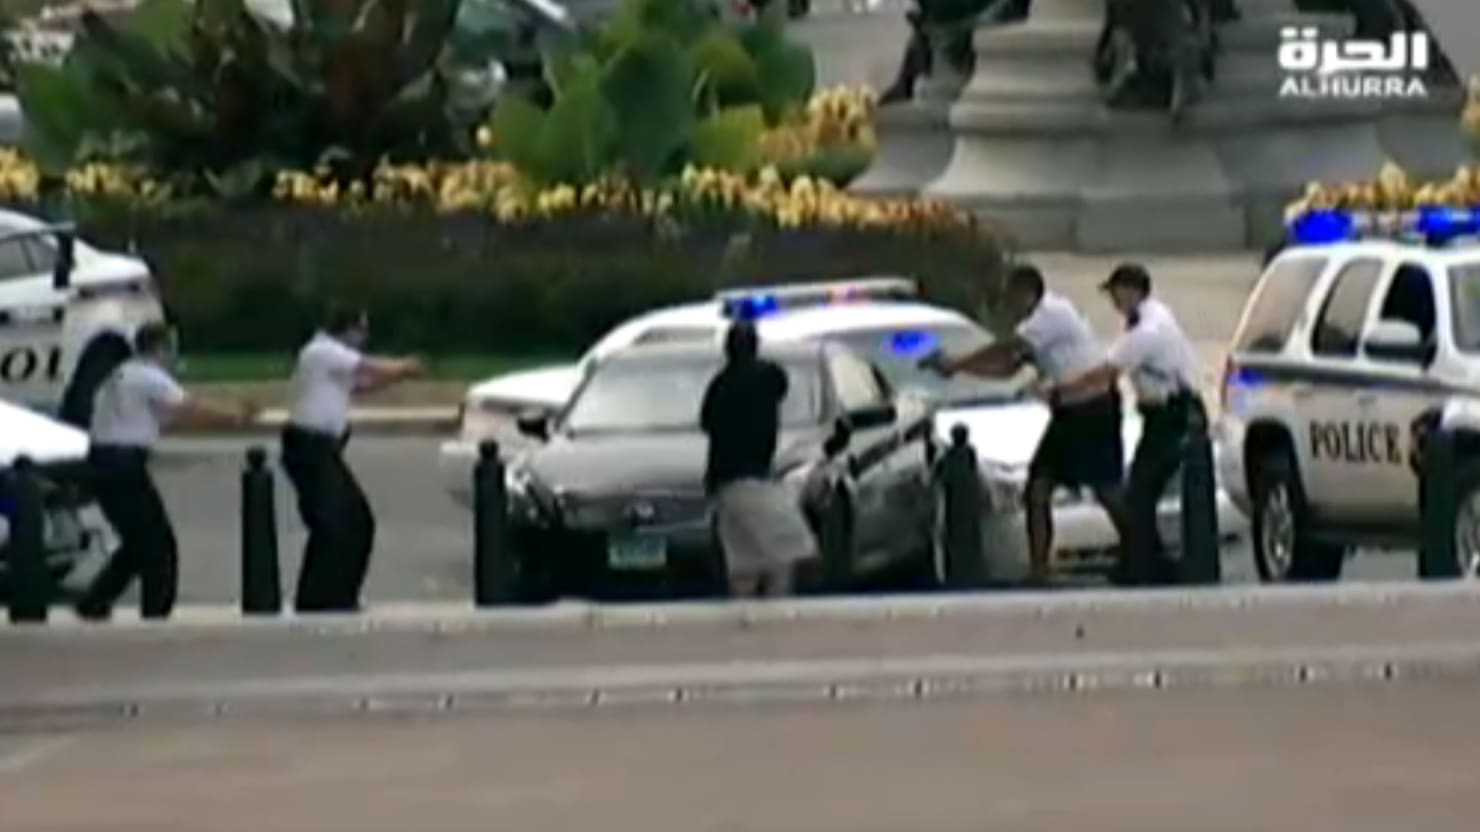 The Story Behind That Incredibly Riveting Video of the D.C. Car Chase